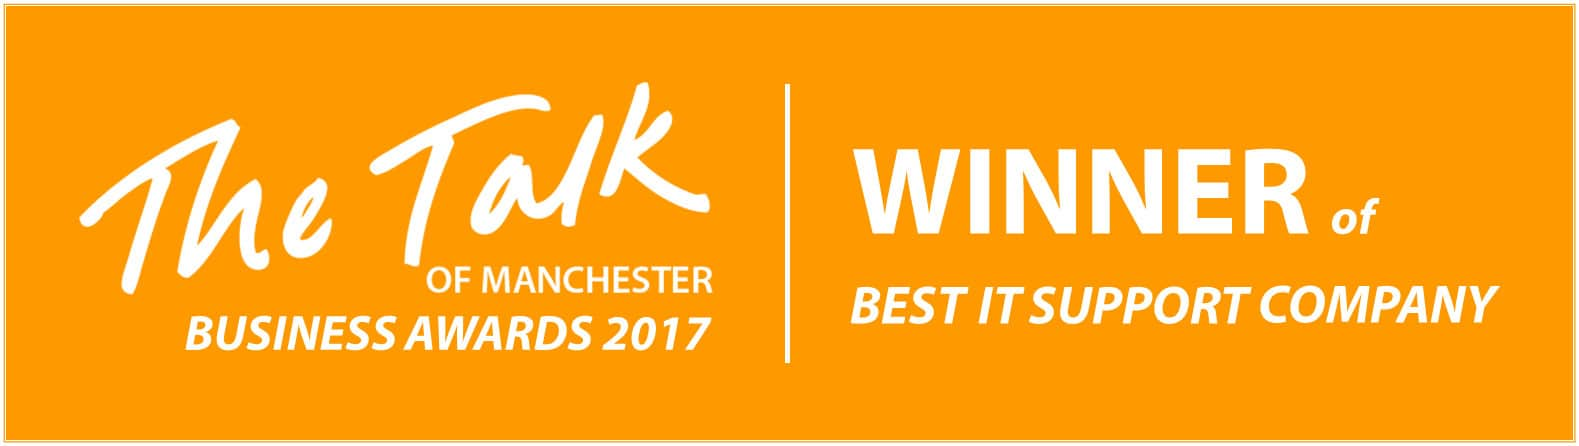 The Talk Business Awards 2017 - Winner - Best IT Support Company